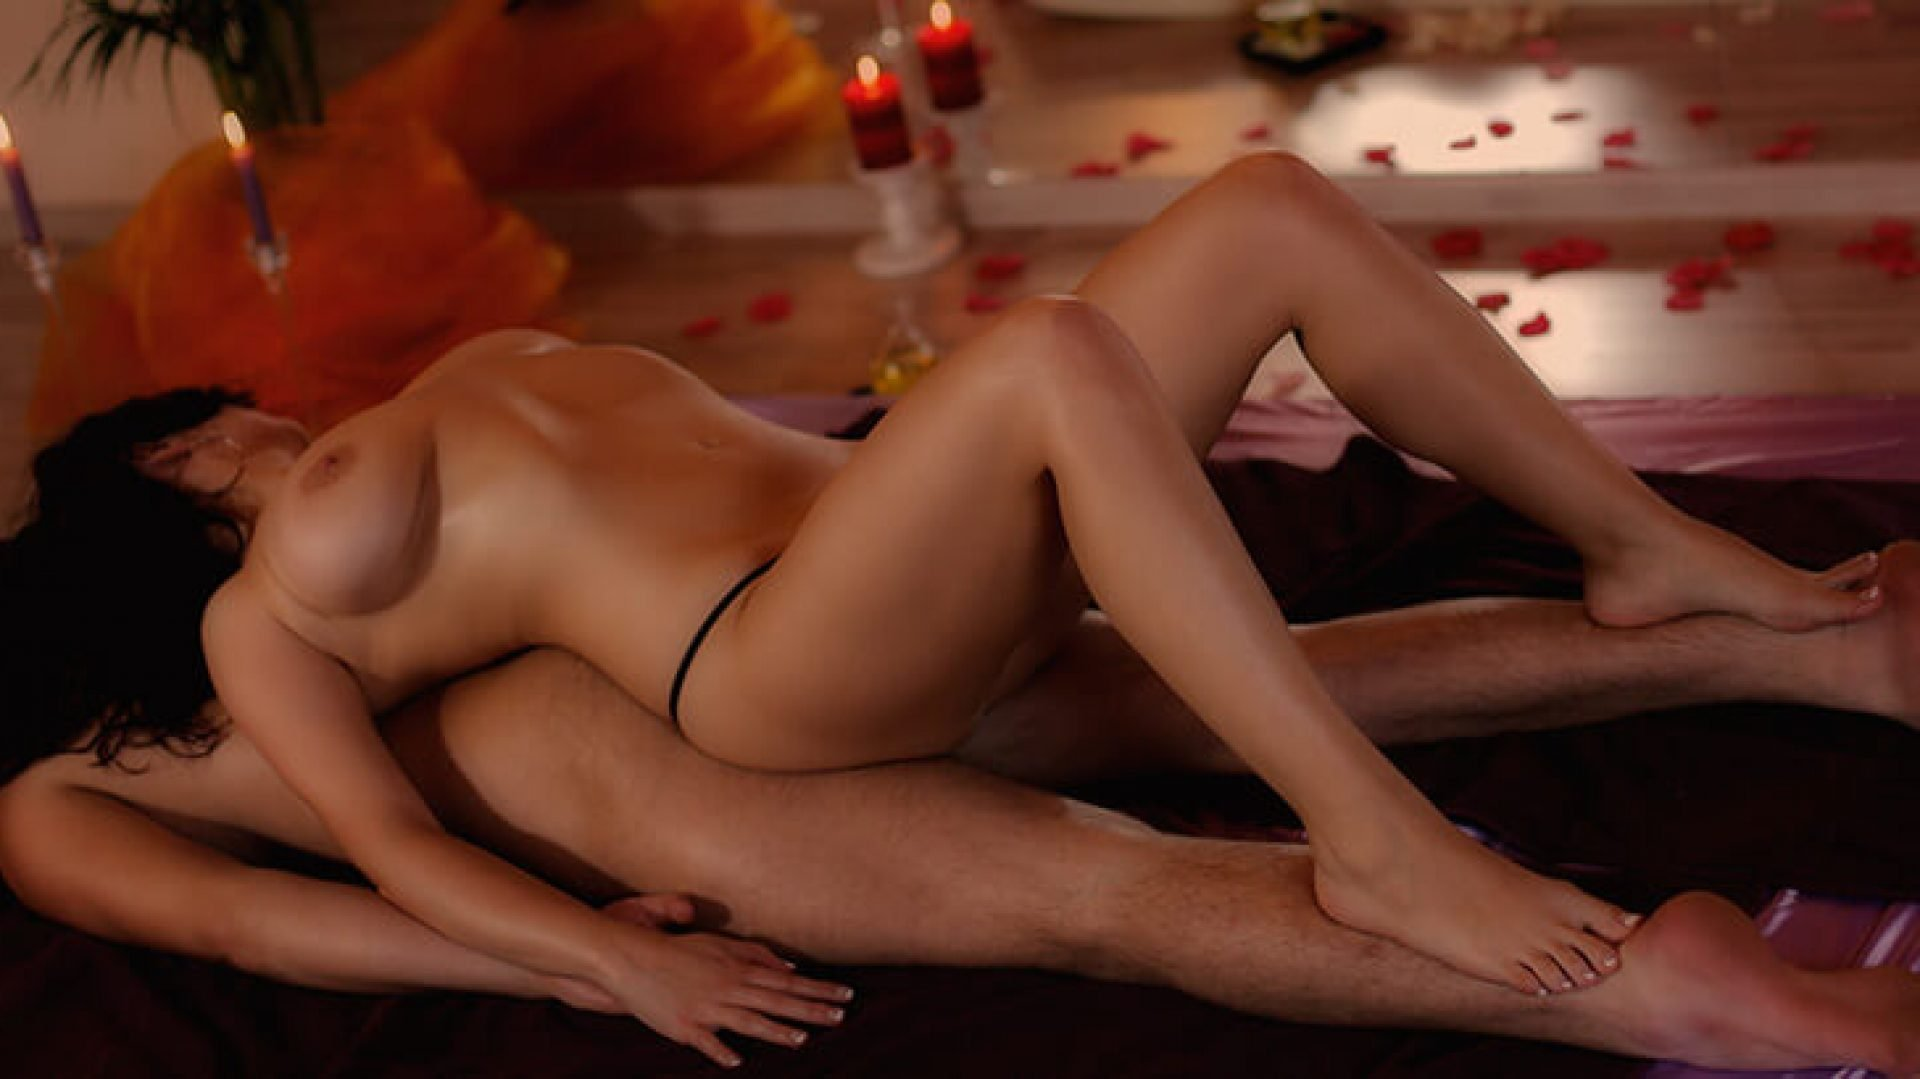 Erotic massage, nuru massage in Manhattan, NYC